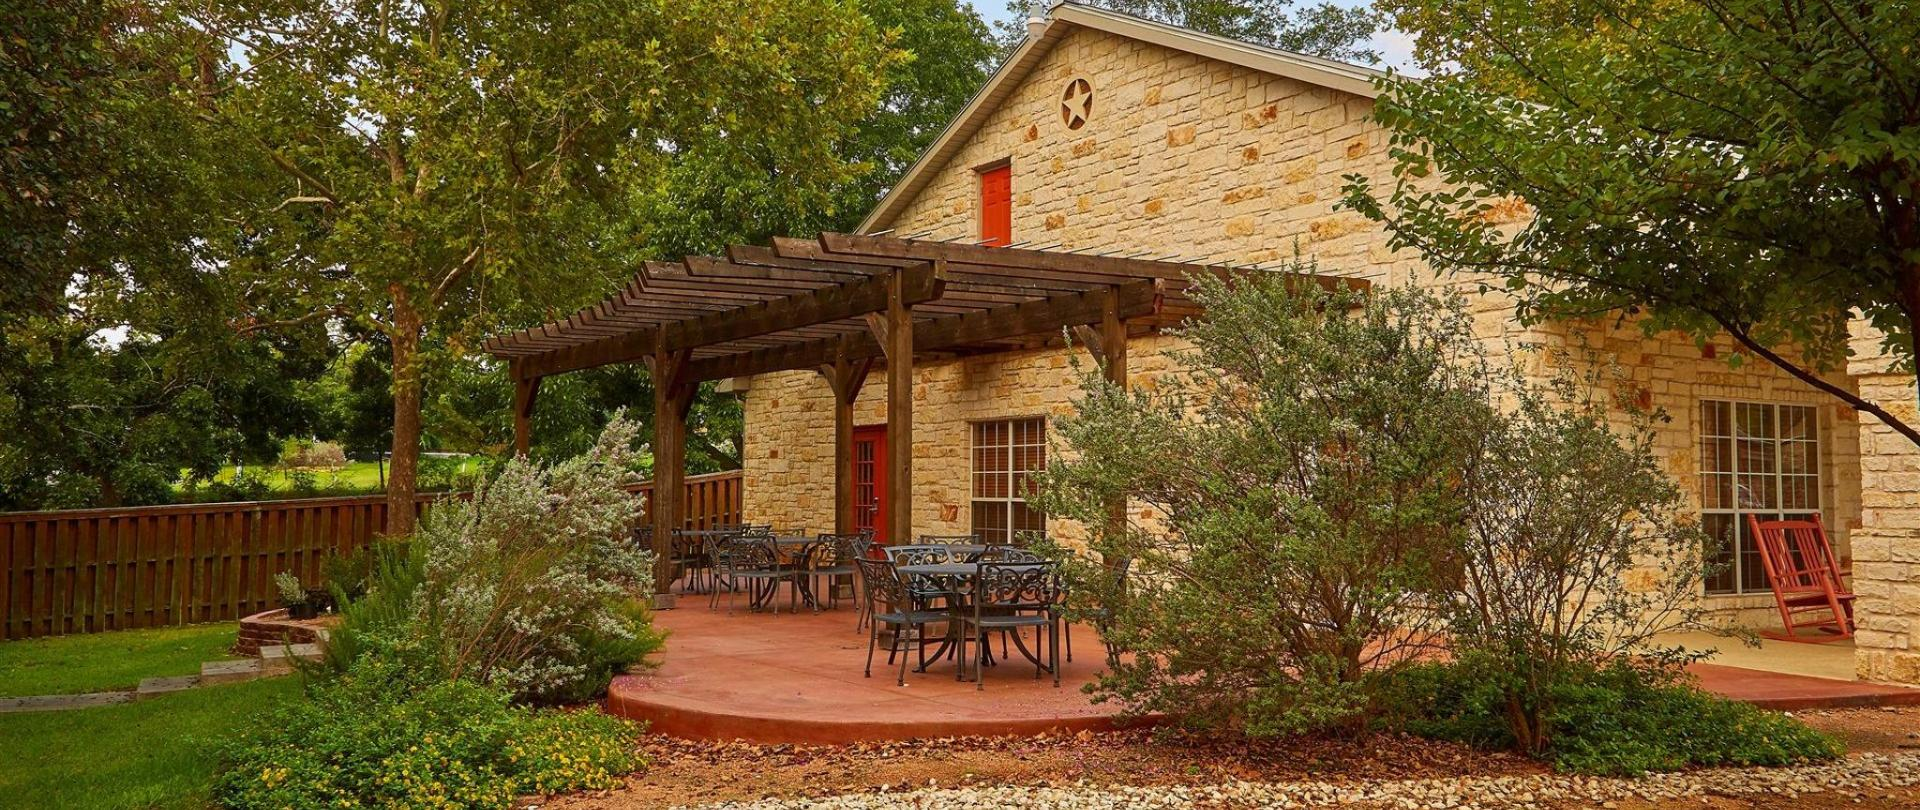 hotel fredericksburg tx booking breakfast the com us and bird haus bed